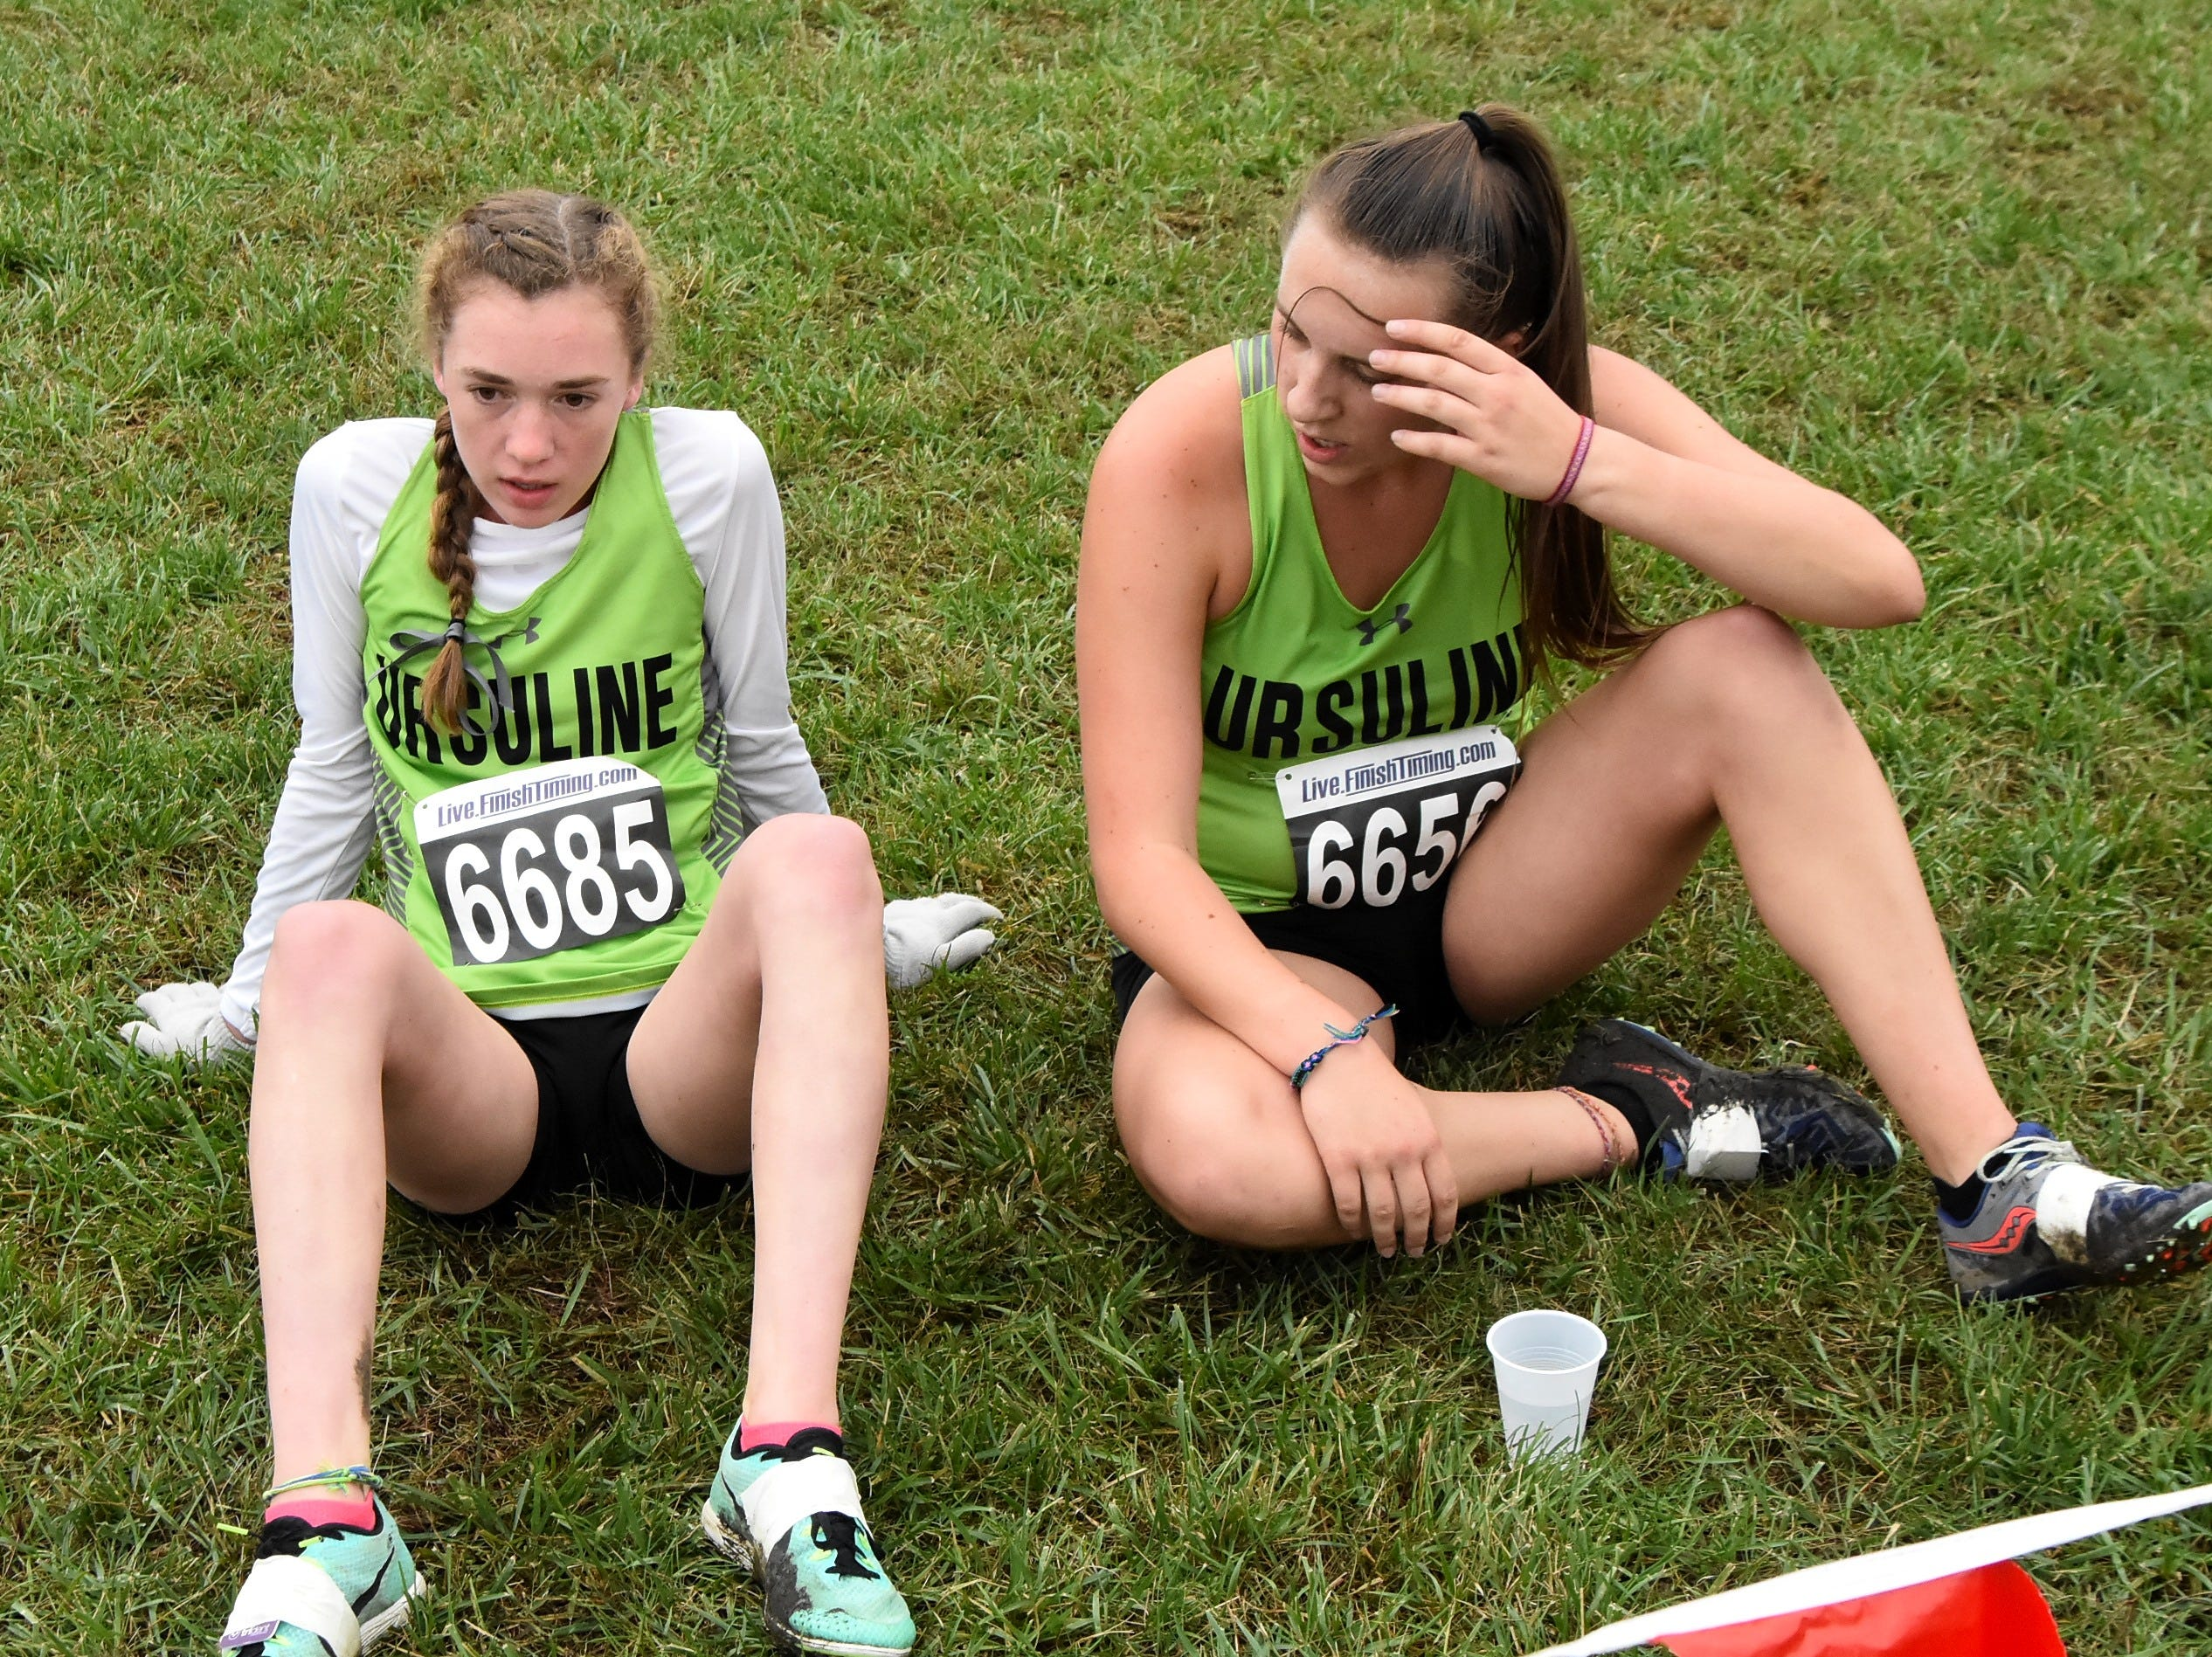 Ursuline's Sophie Taylor and Mia Czarnecki rest at the finish area after running strong at the 2018 GCL/GGCL Cross Country Championships, October 13, 2018.